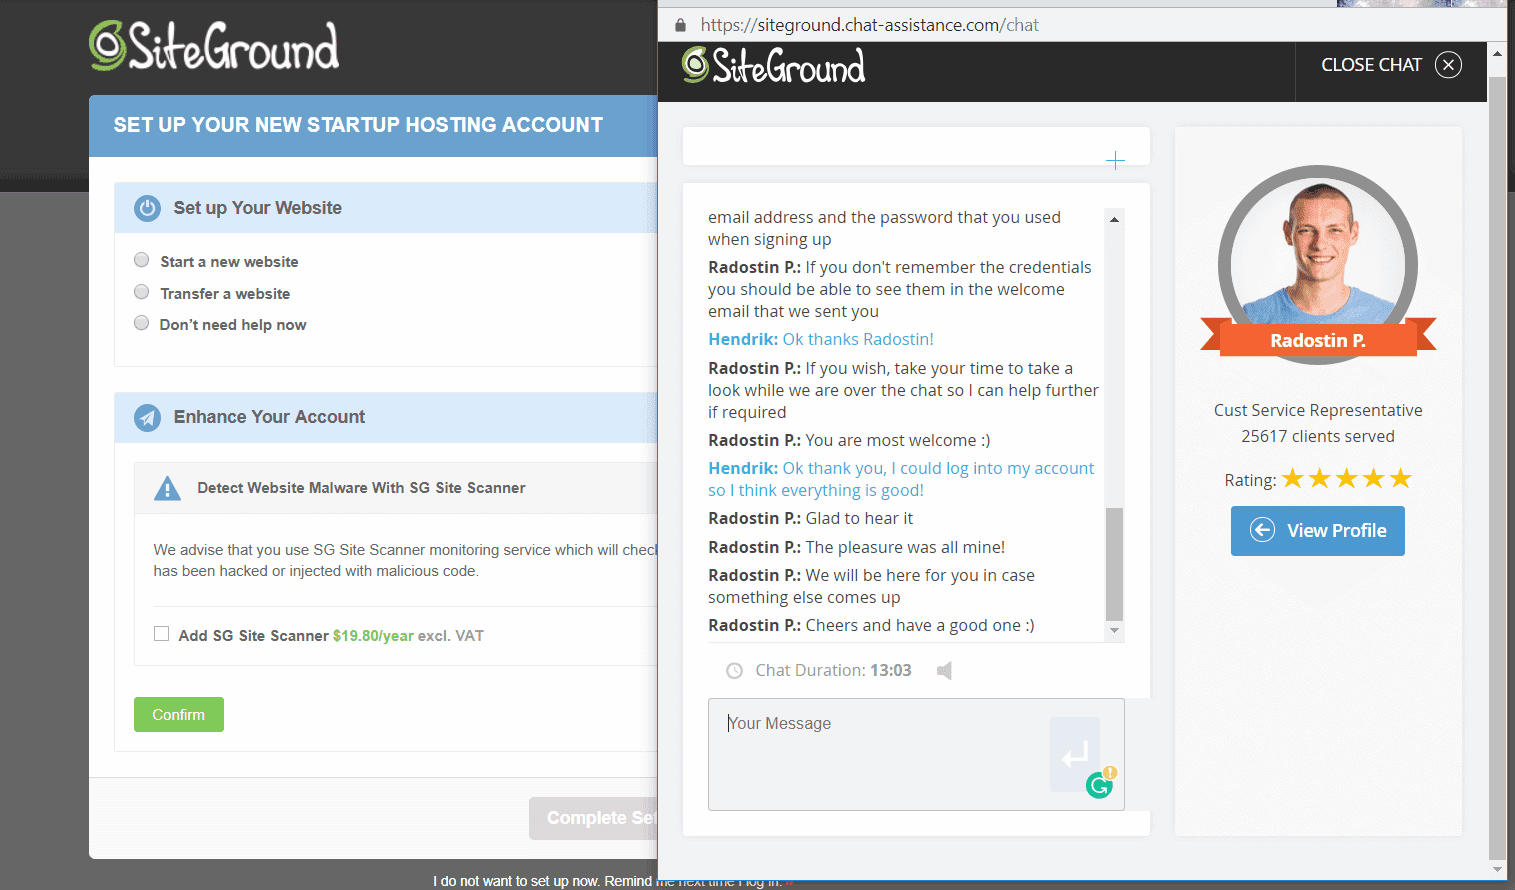 SiteGround's live chat support